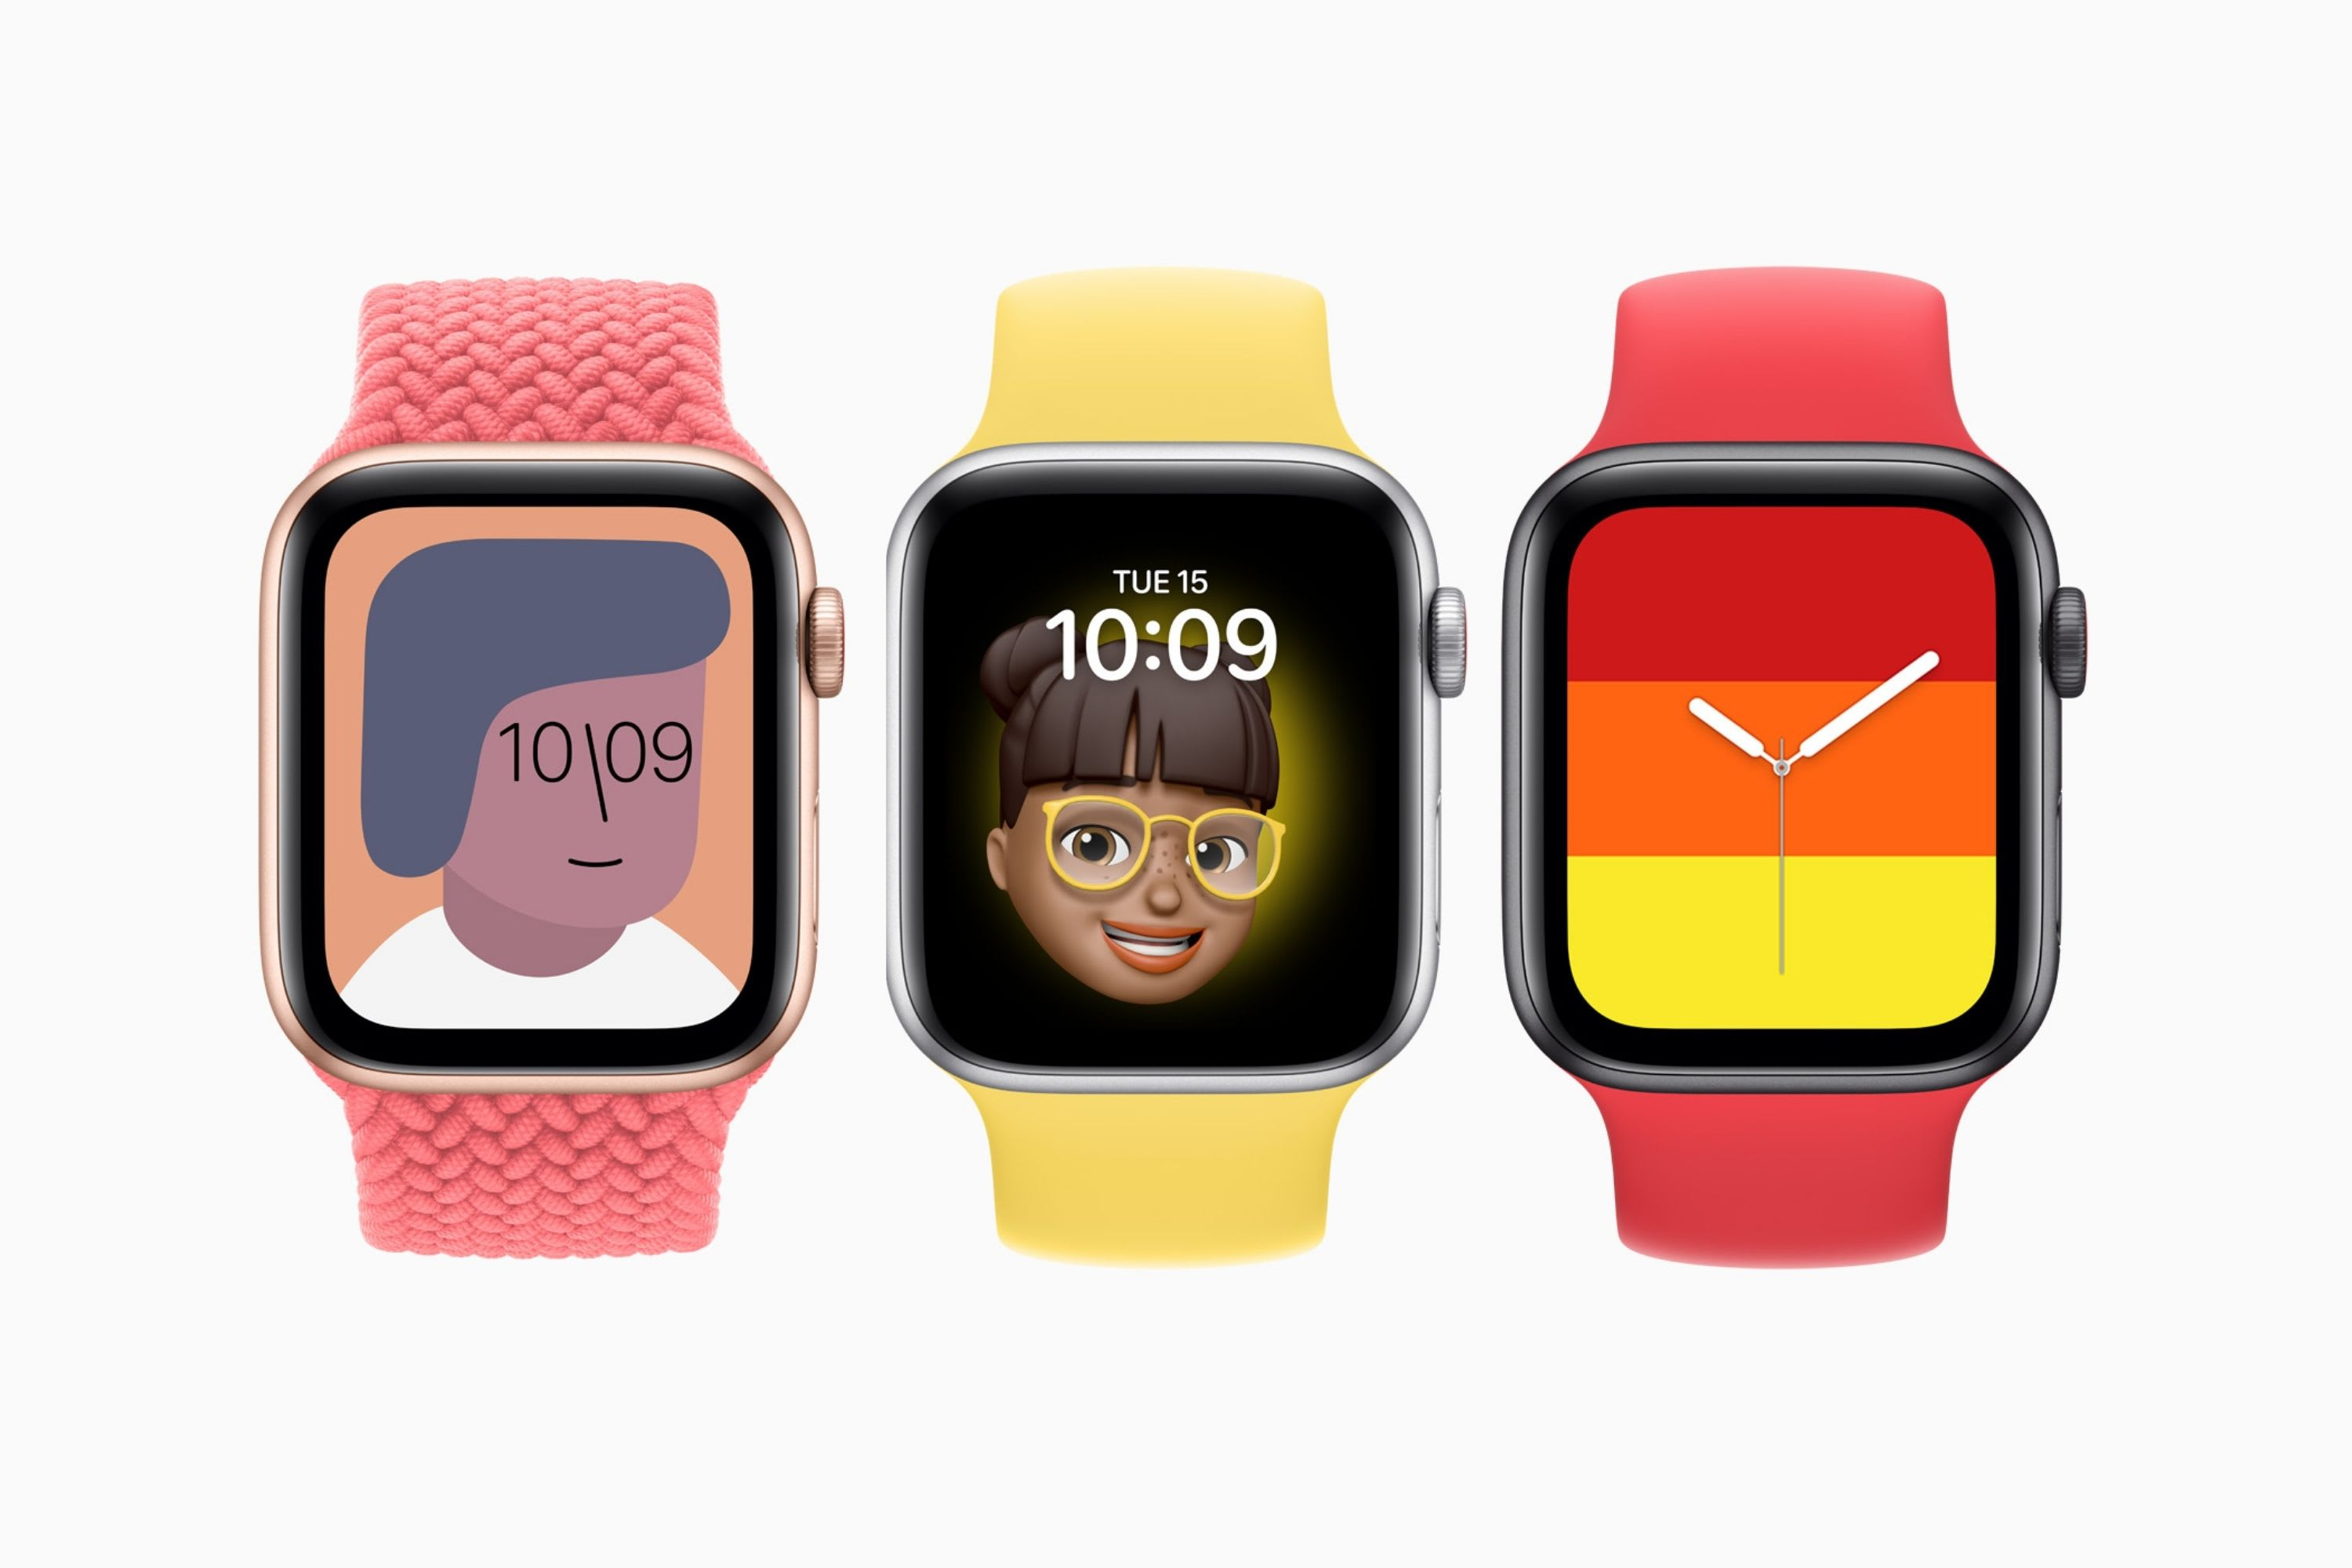 appleone-and-family-setup-coming-to-watchos-7-and-ipados-14-20200915-6